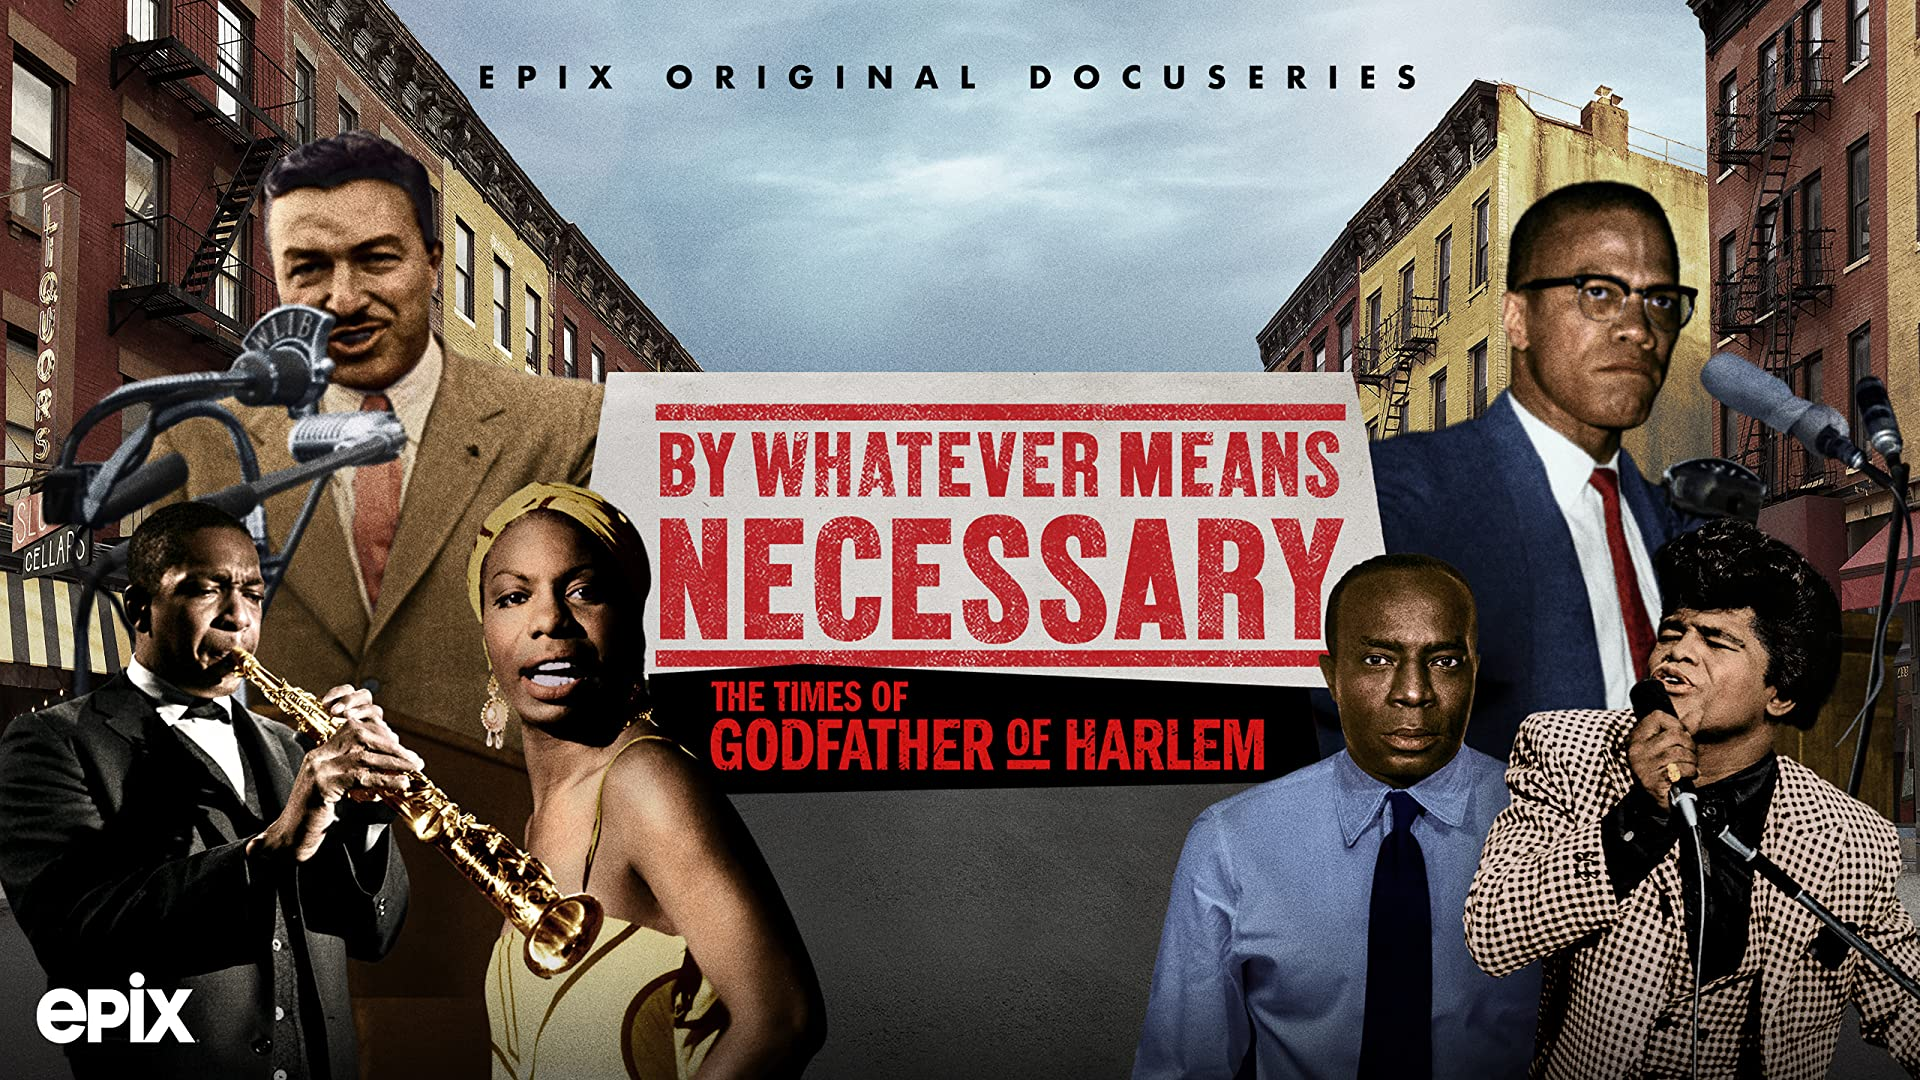 By Whatever Means Necessary: The Times of Godfather of Harlem, Season 1